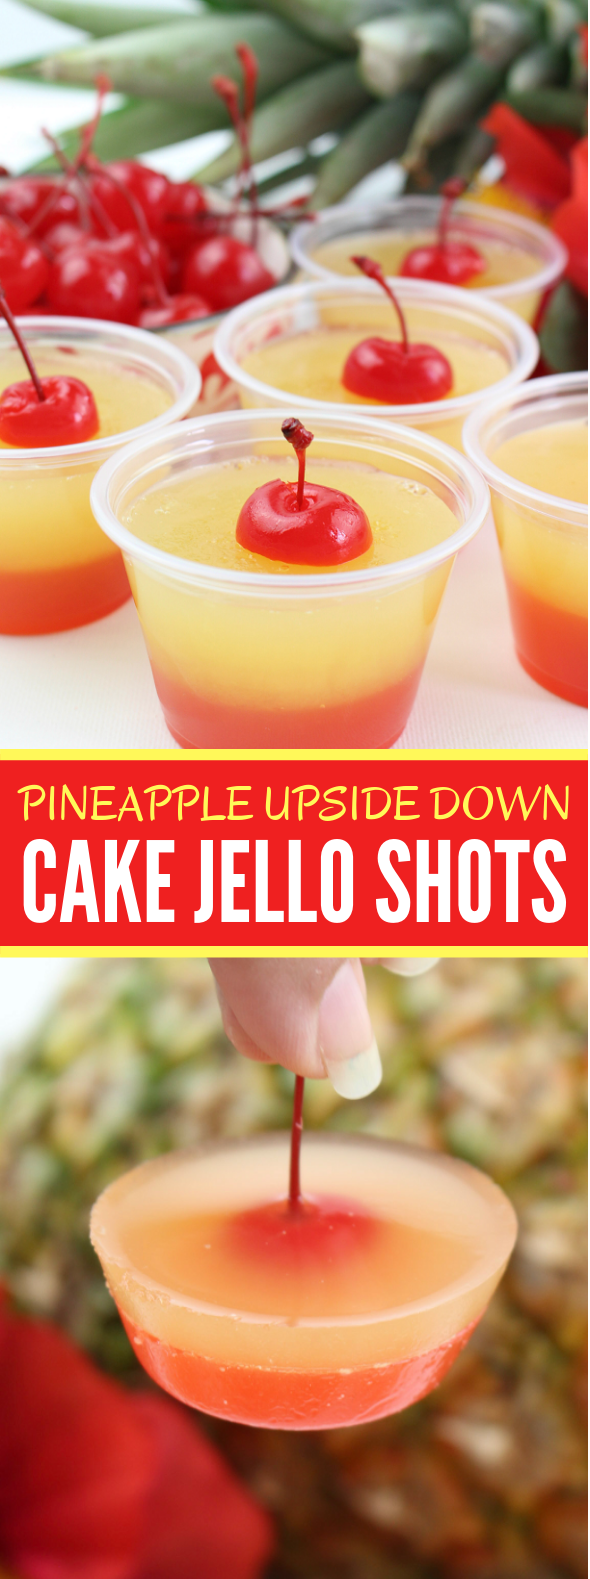 Pineapple Upside Down Cake Jello Shots #drinks #desserts